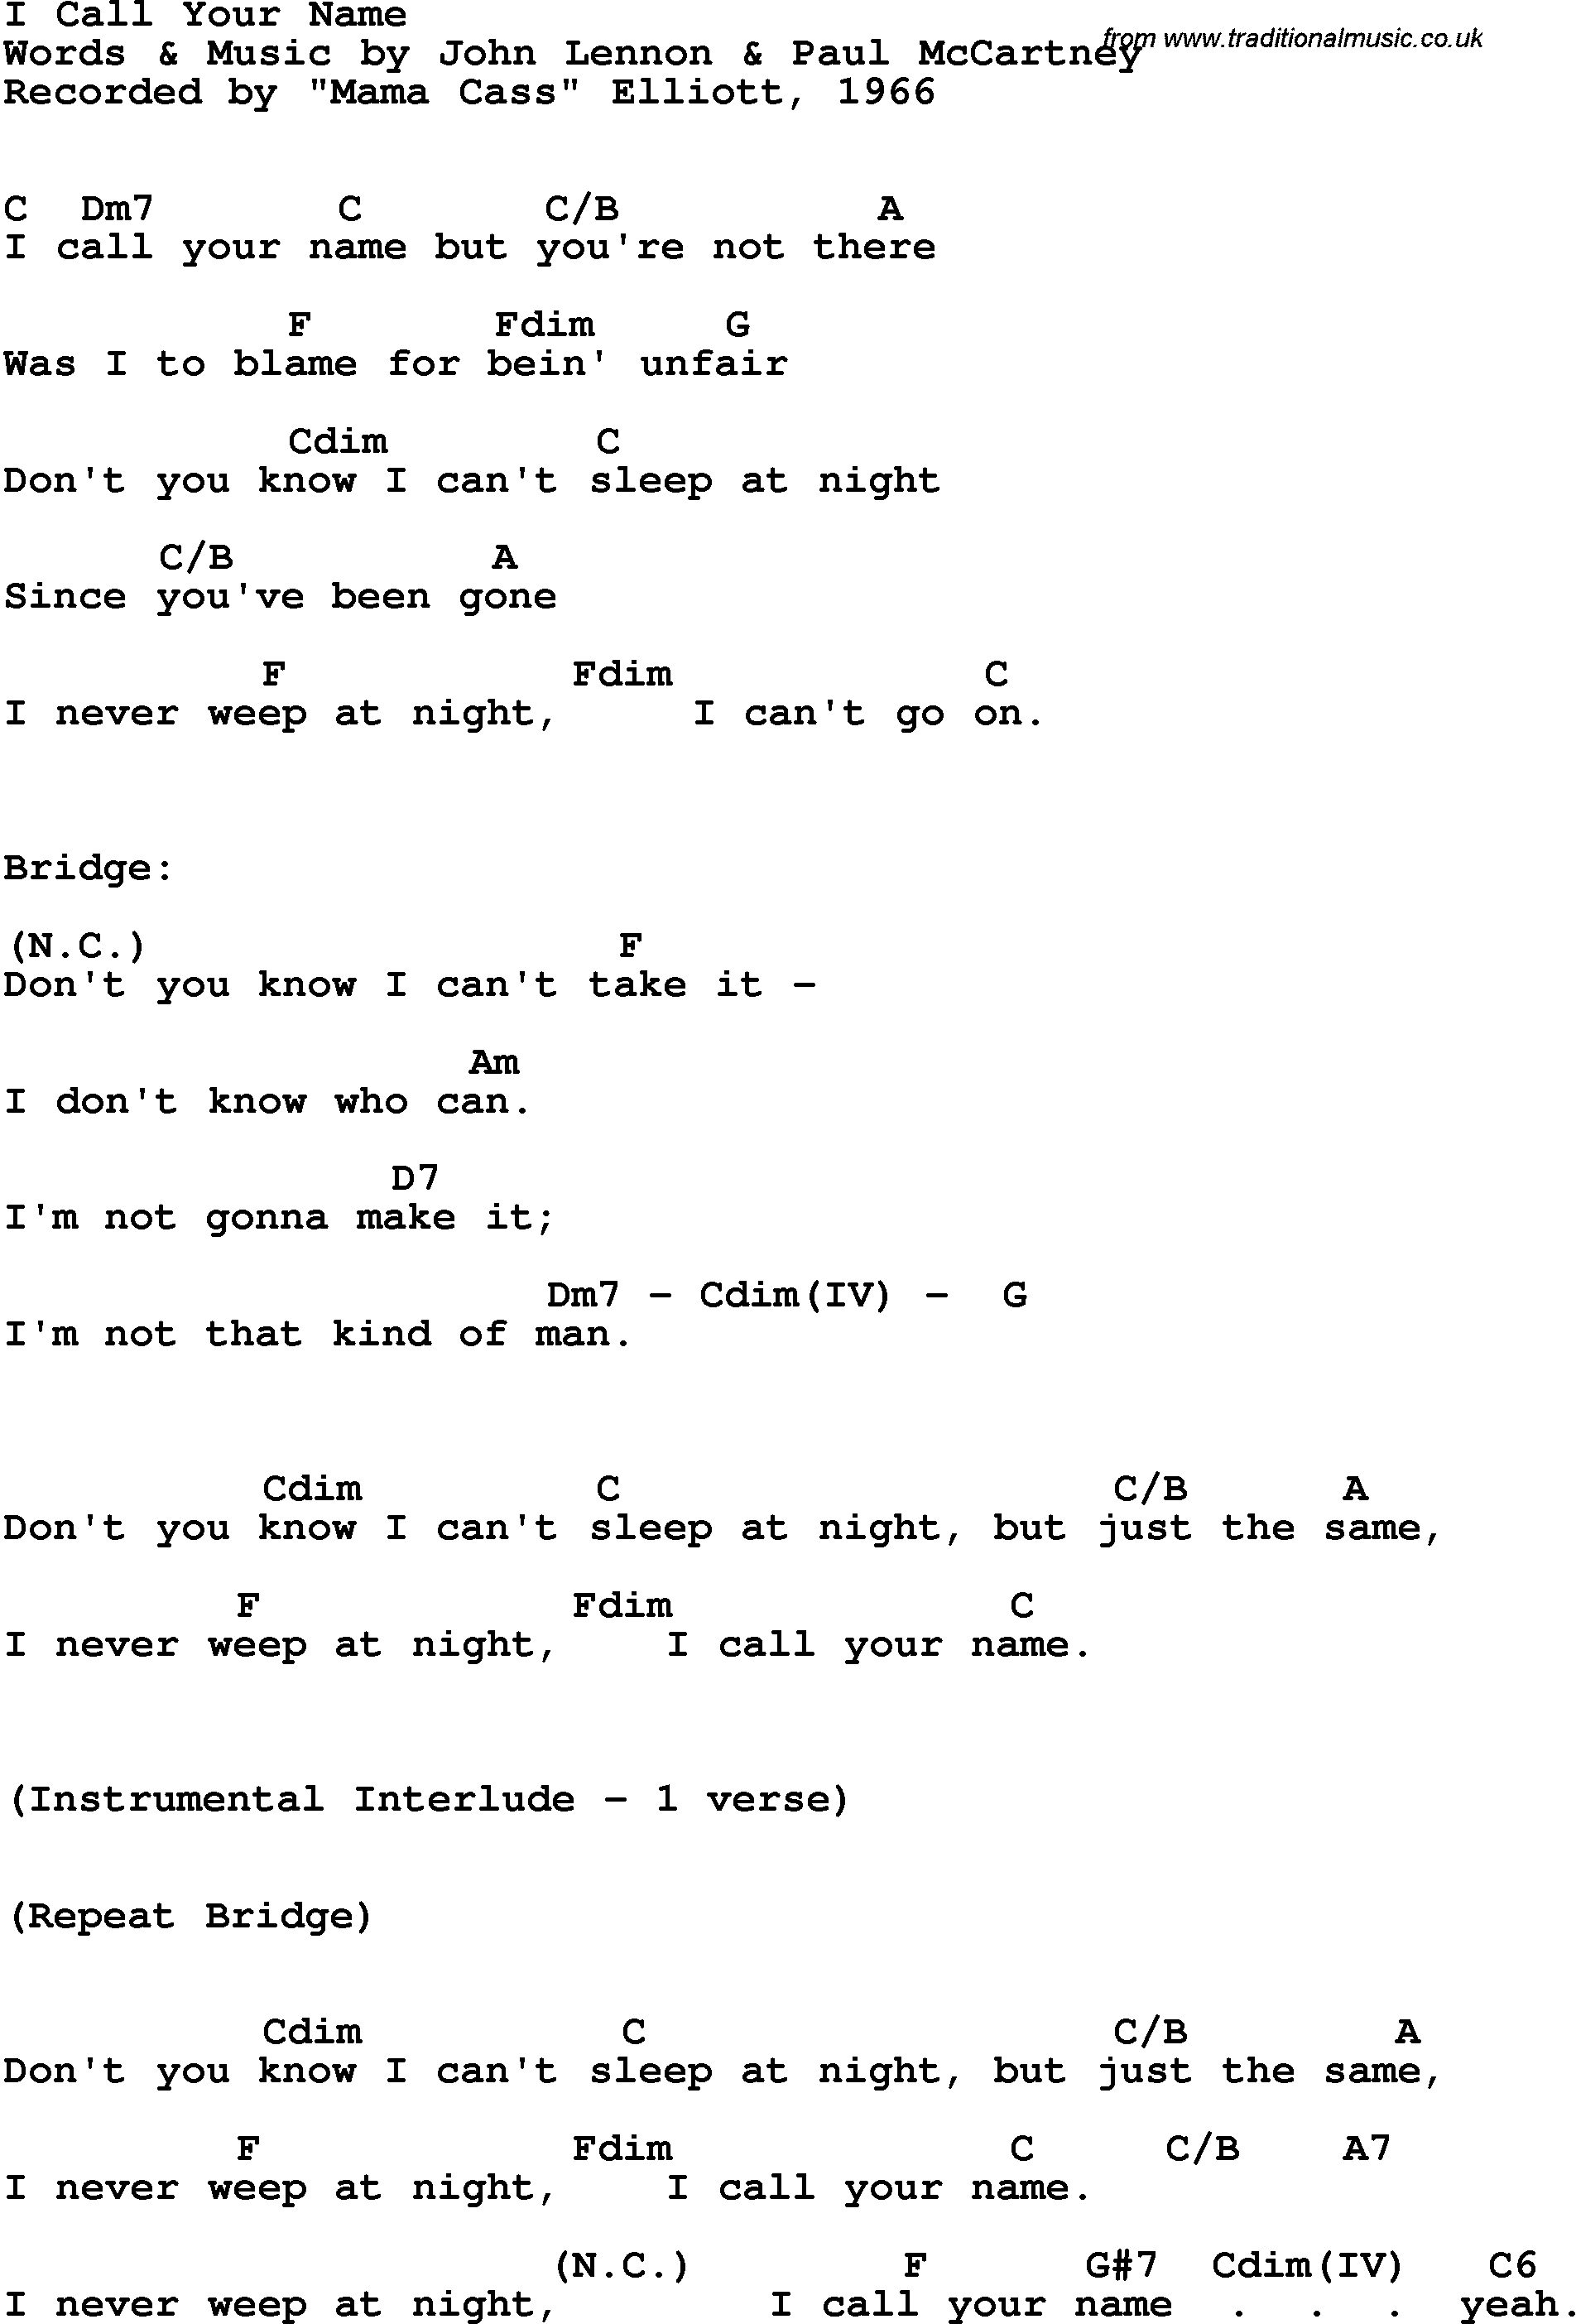 Song lyrics with guitar chords for I Call Your Name - Mama Cass Elliott, 1966